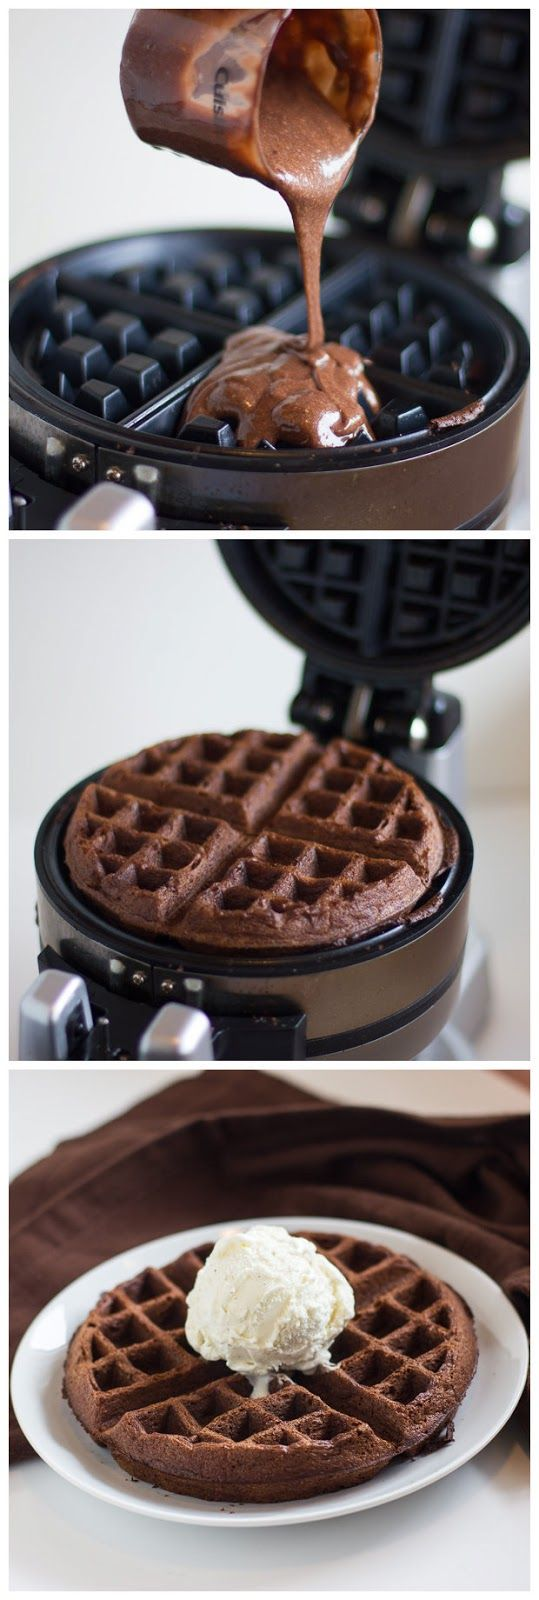 Oreo Kuchen Backmischung 25 Things You Didn T Know You Could Cook On A Waffle Iron